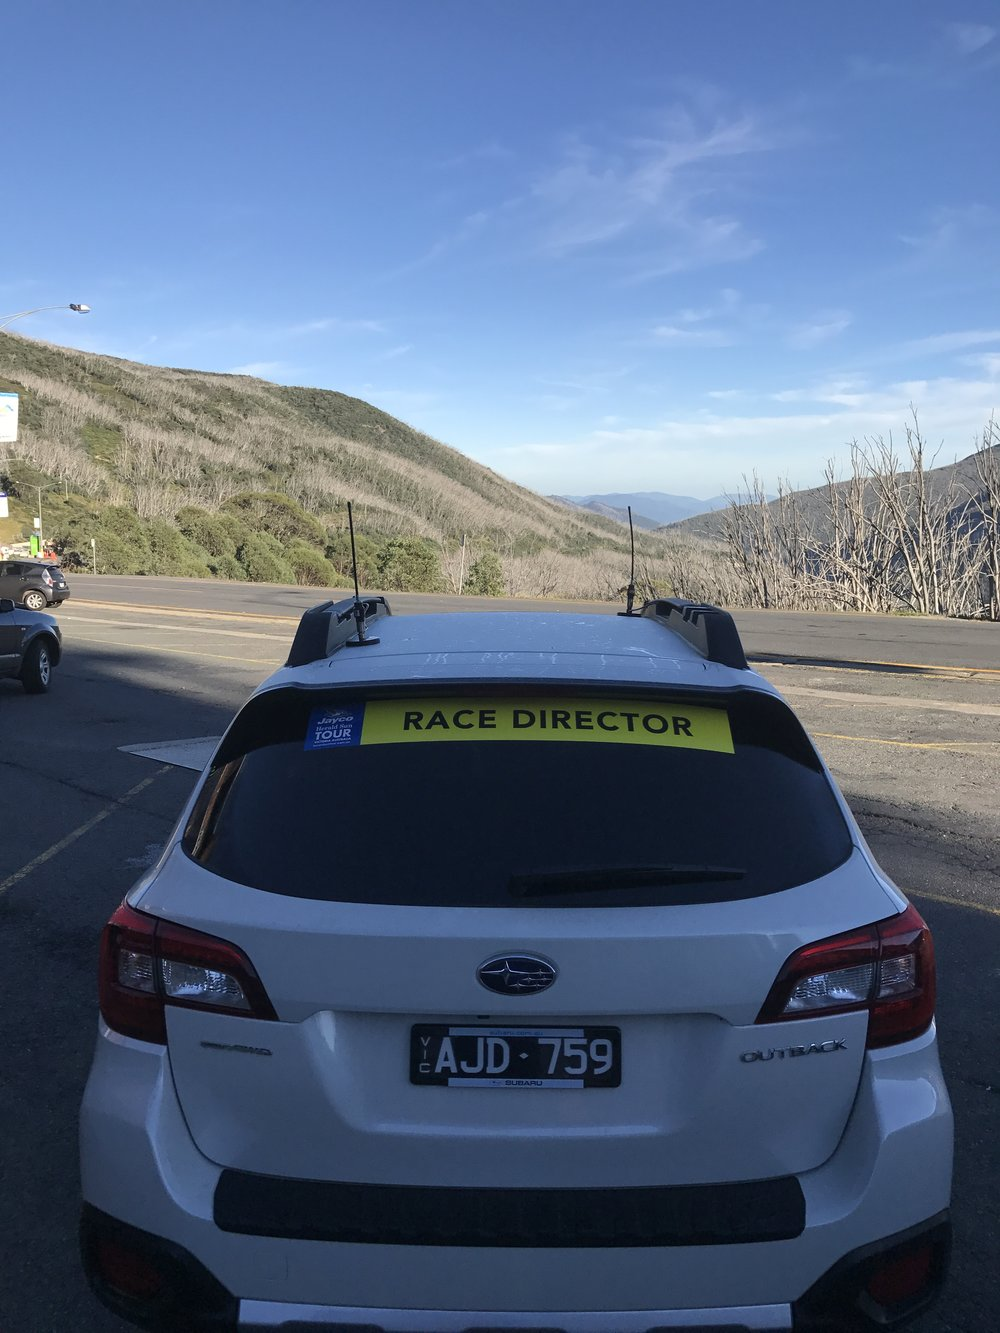 HST 2017 Stage 2 - The day started in Falls Creek with a spectacular view